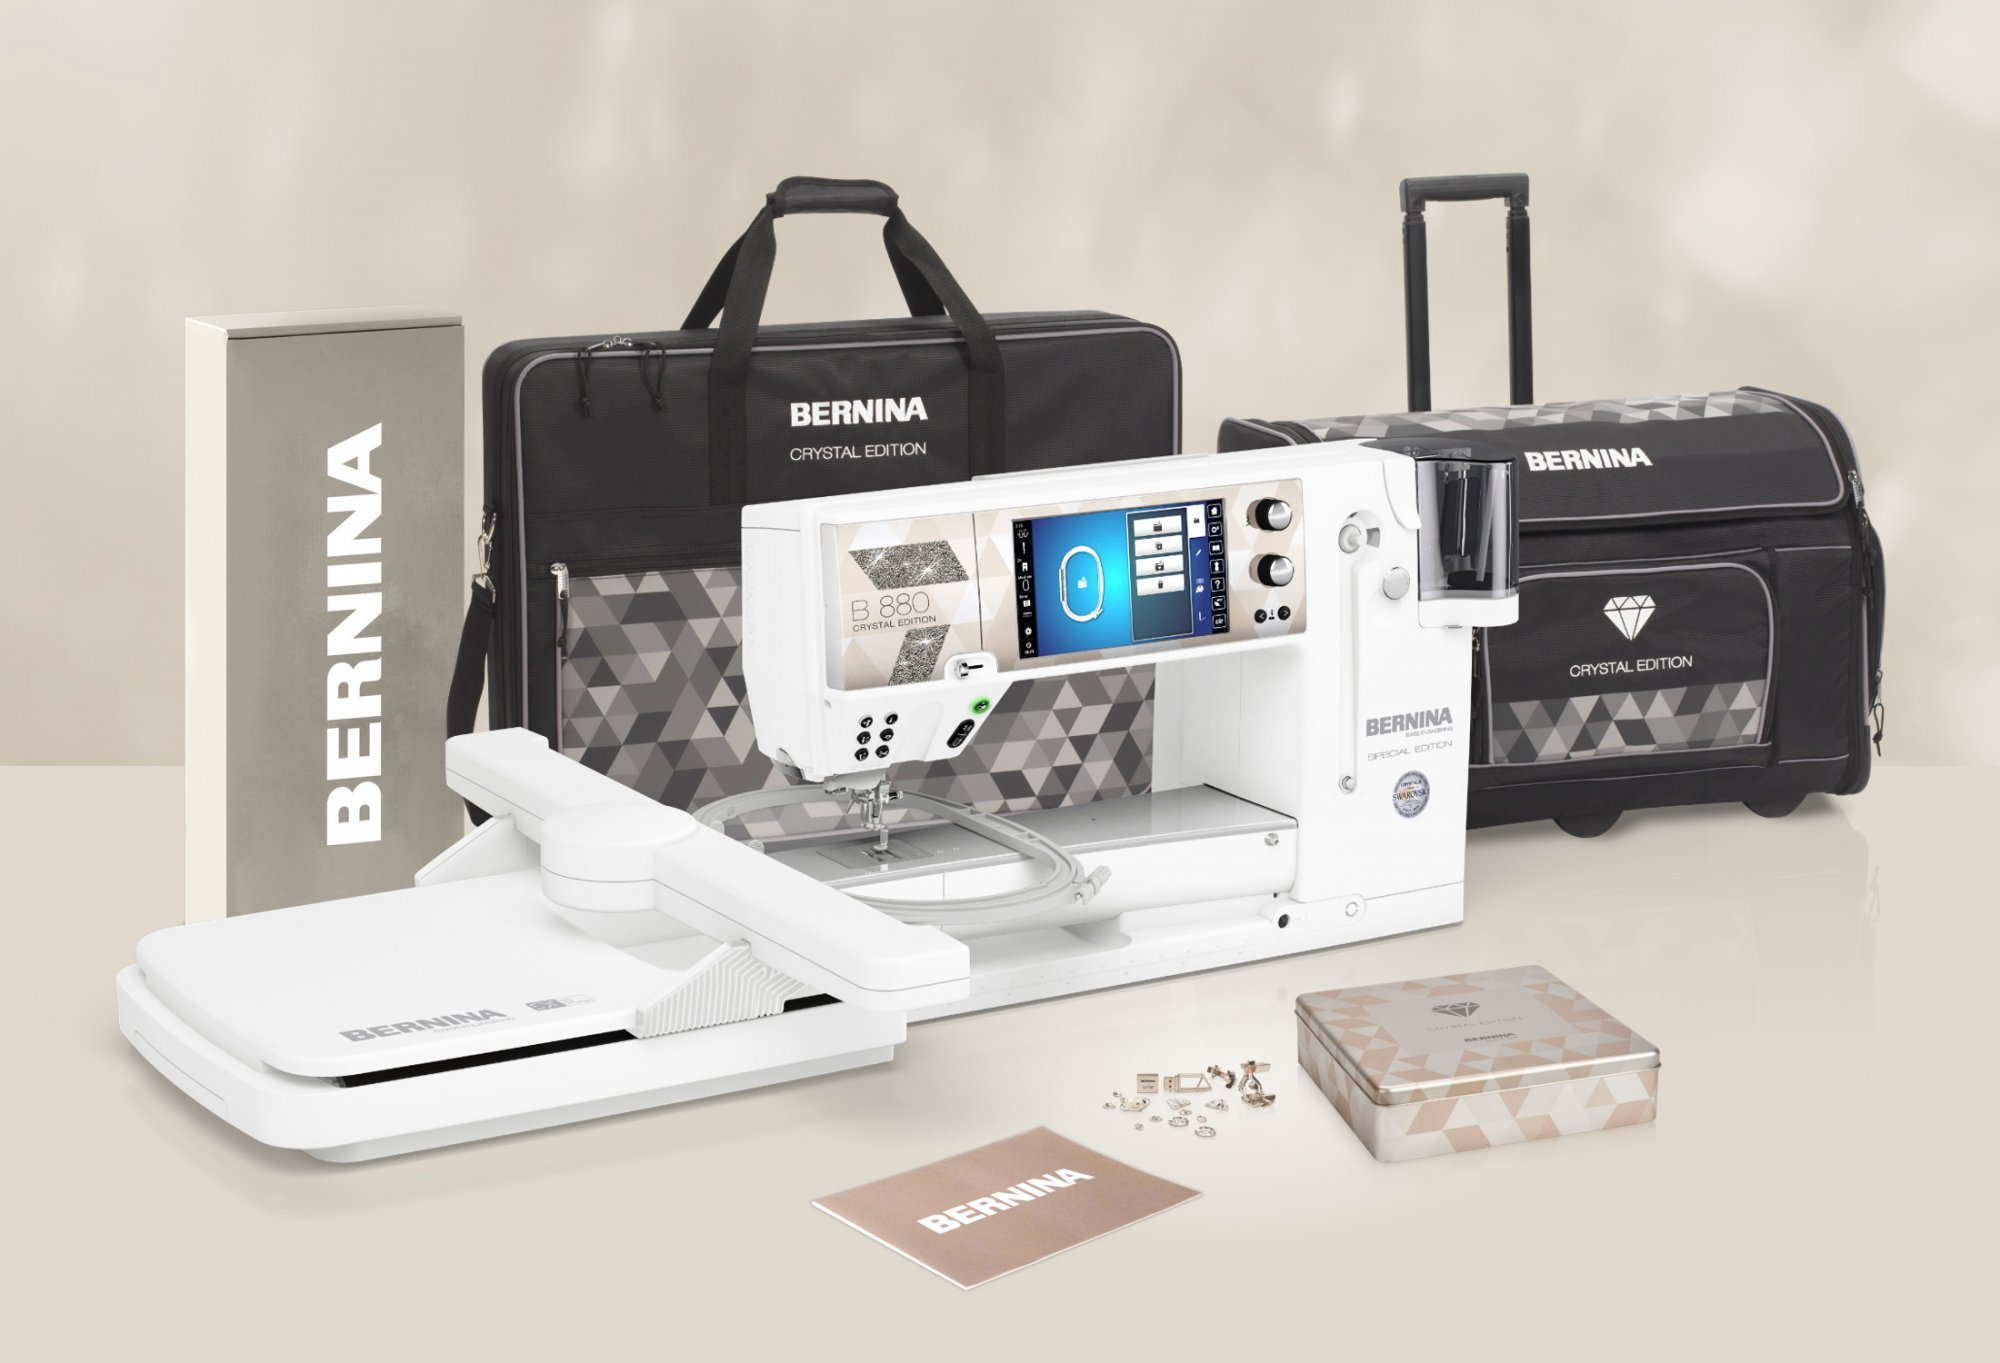 **NEW!** B880 PLUS Special Crystal Edition - COMING SOON